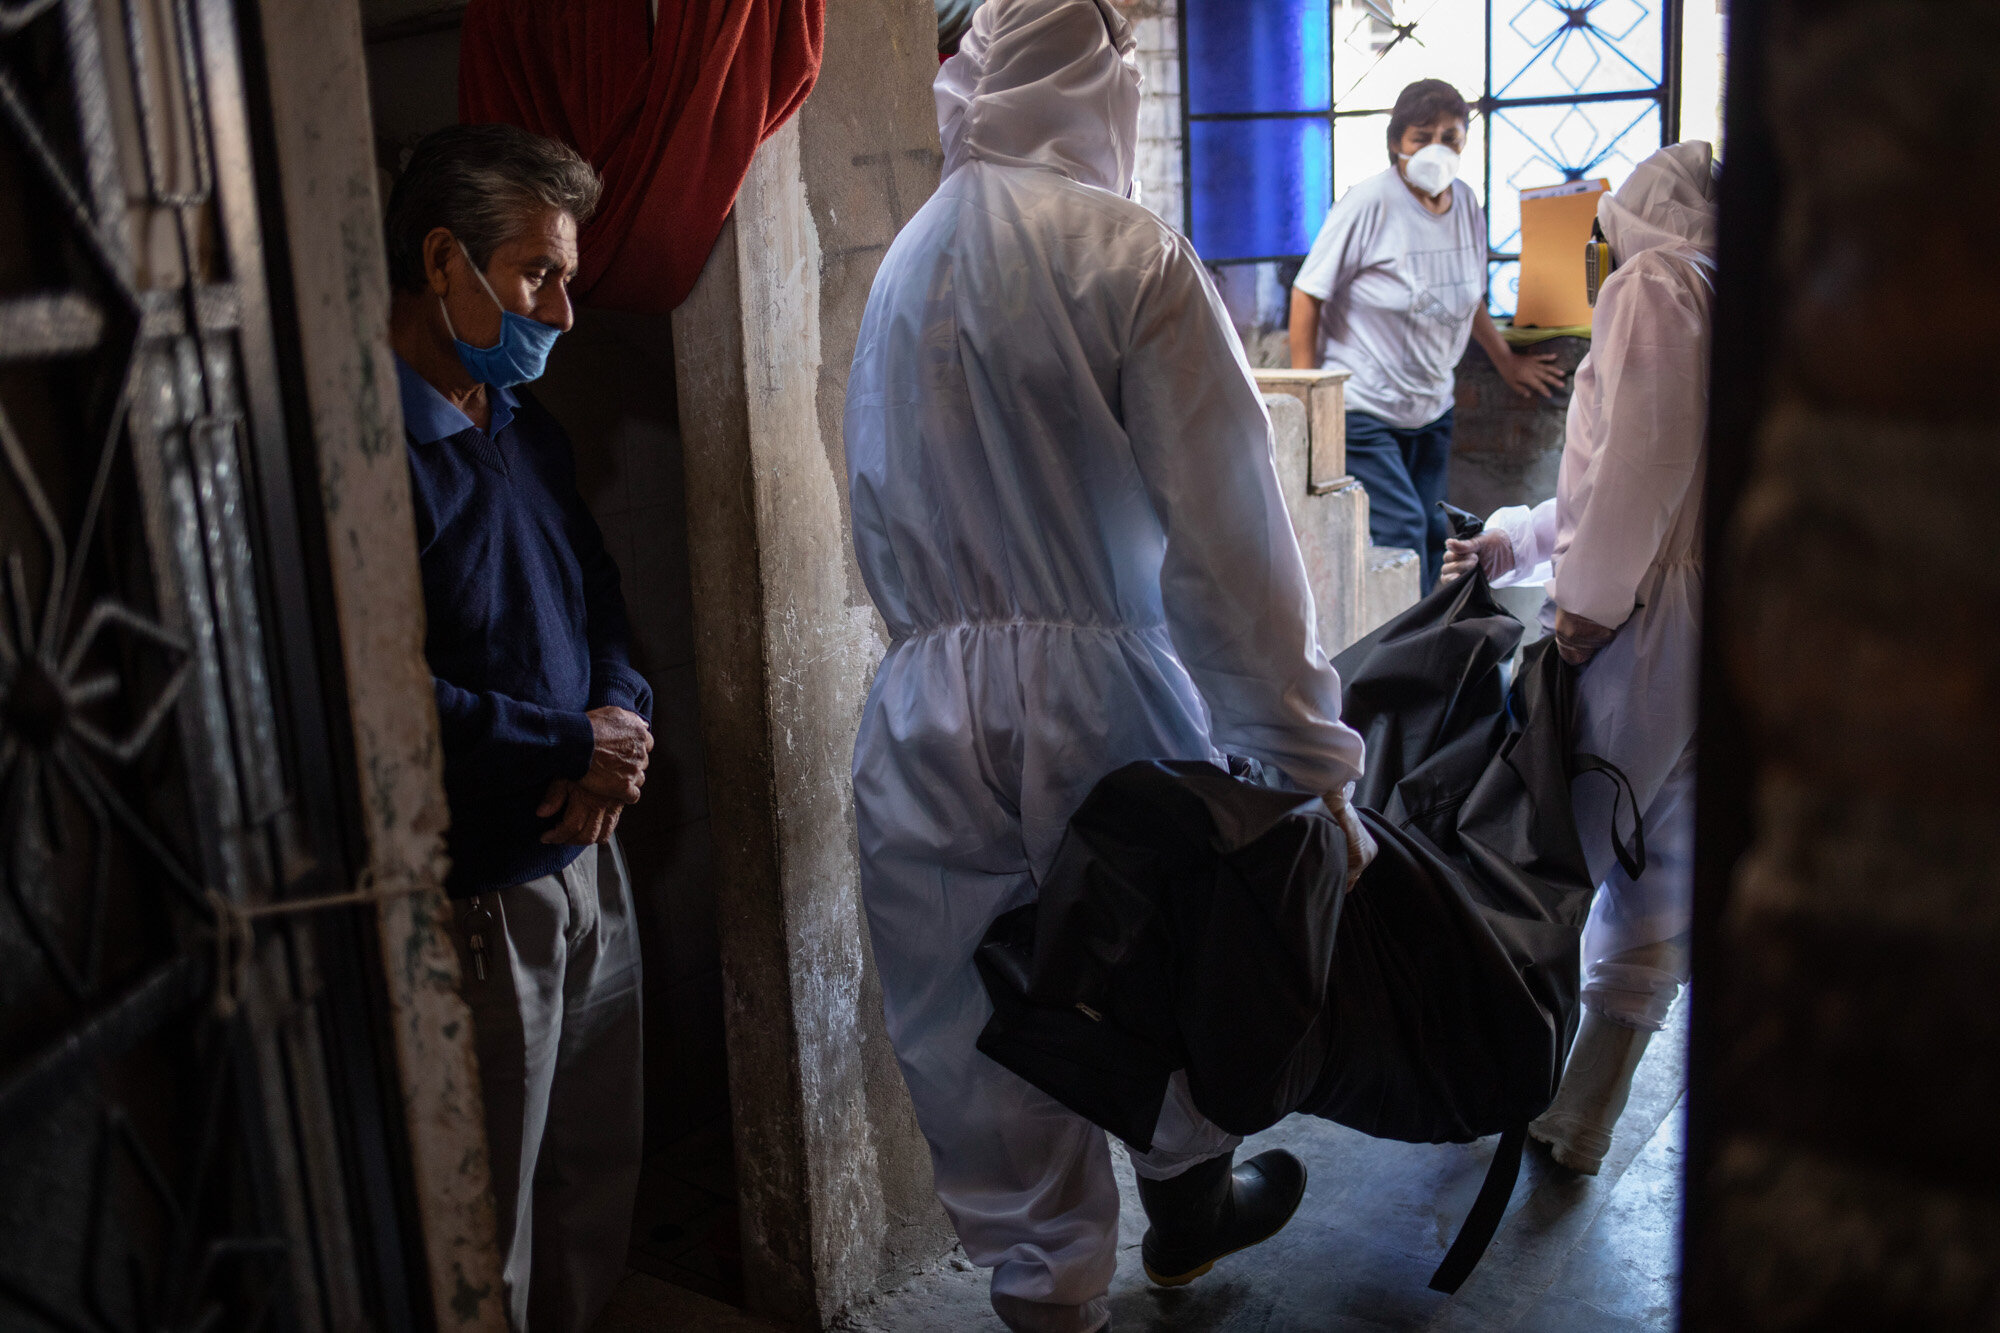 Teodoro Mejia, left, watches workers from the Piedrangel funeral home remove the body of his wife, Berta Cusi Palomino, from their home in Lima, Peru, May 14, 2020. Palomino was believed to have died from COVID-19. (AP Photo/Rodrigo Abd)